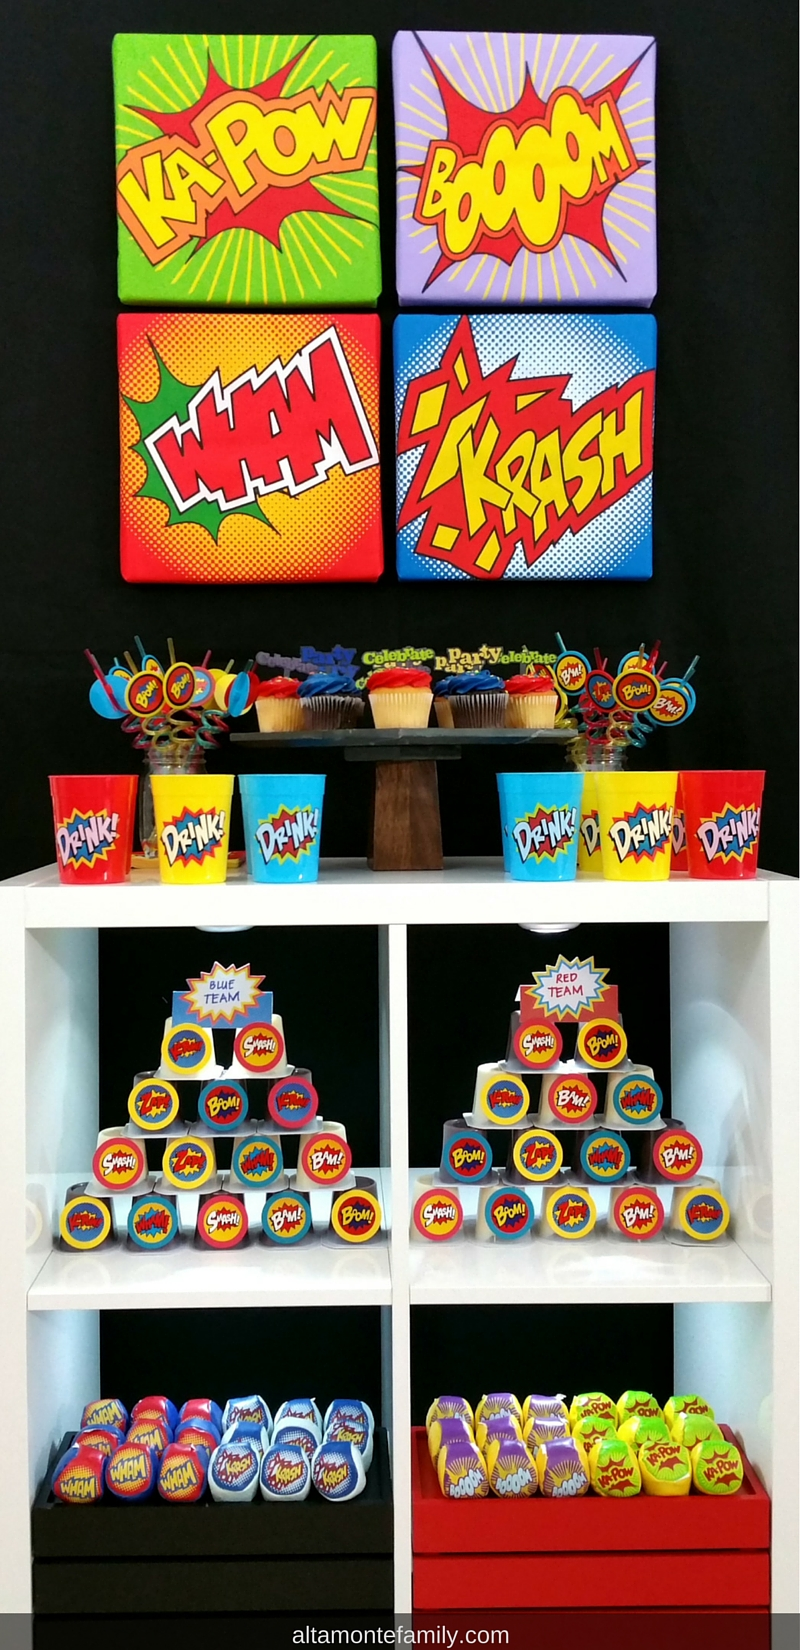 Back To School Superhero Party Ideas and Decorations